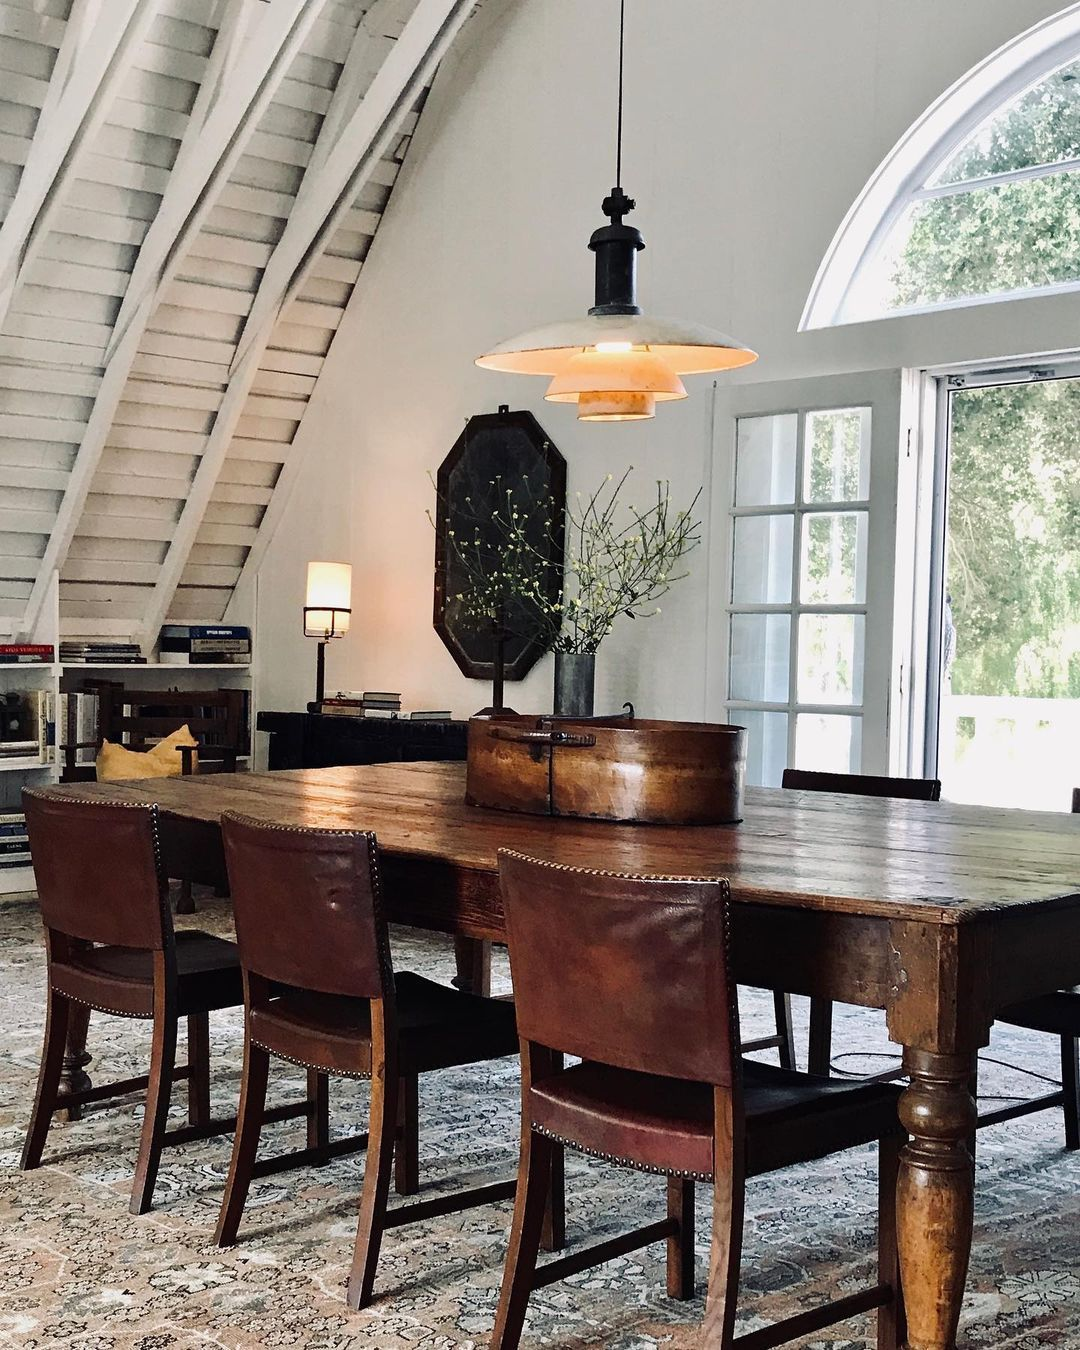 house dining design on Clements Design On Instagram Farm House Dining Chairs By Kaare Klint Pendant By Poul Henningsen Antique Kerman R Clements Design Kerman Rugs Dining Chairs